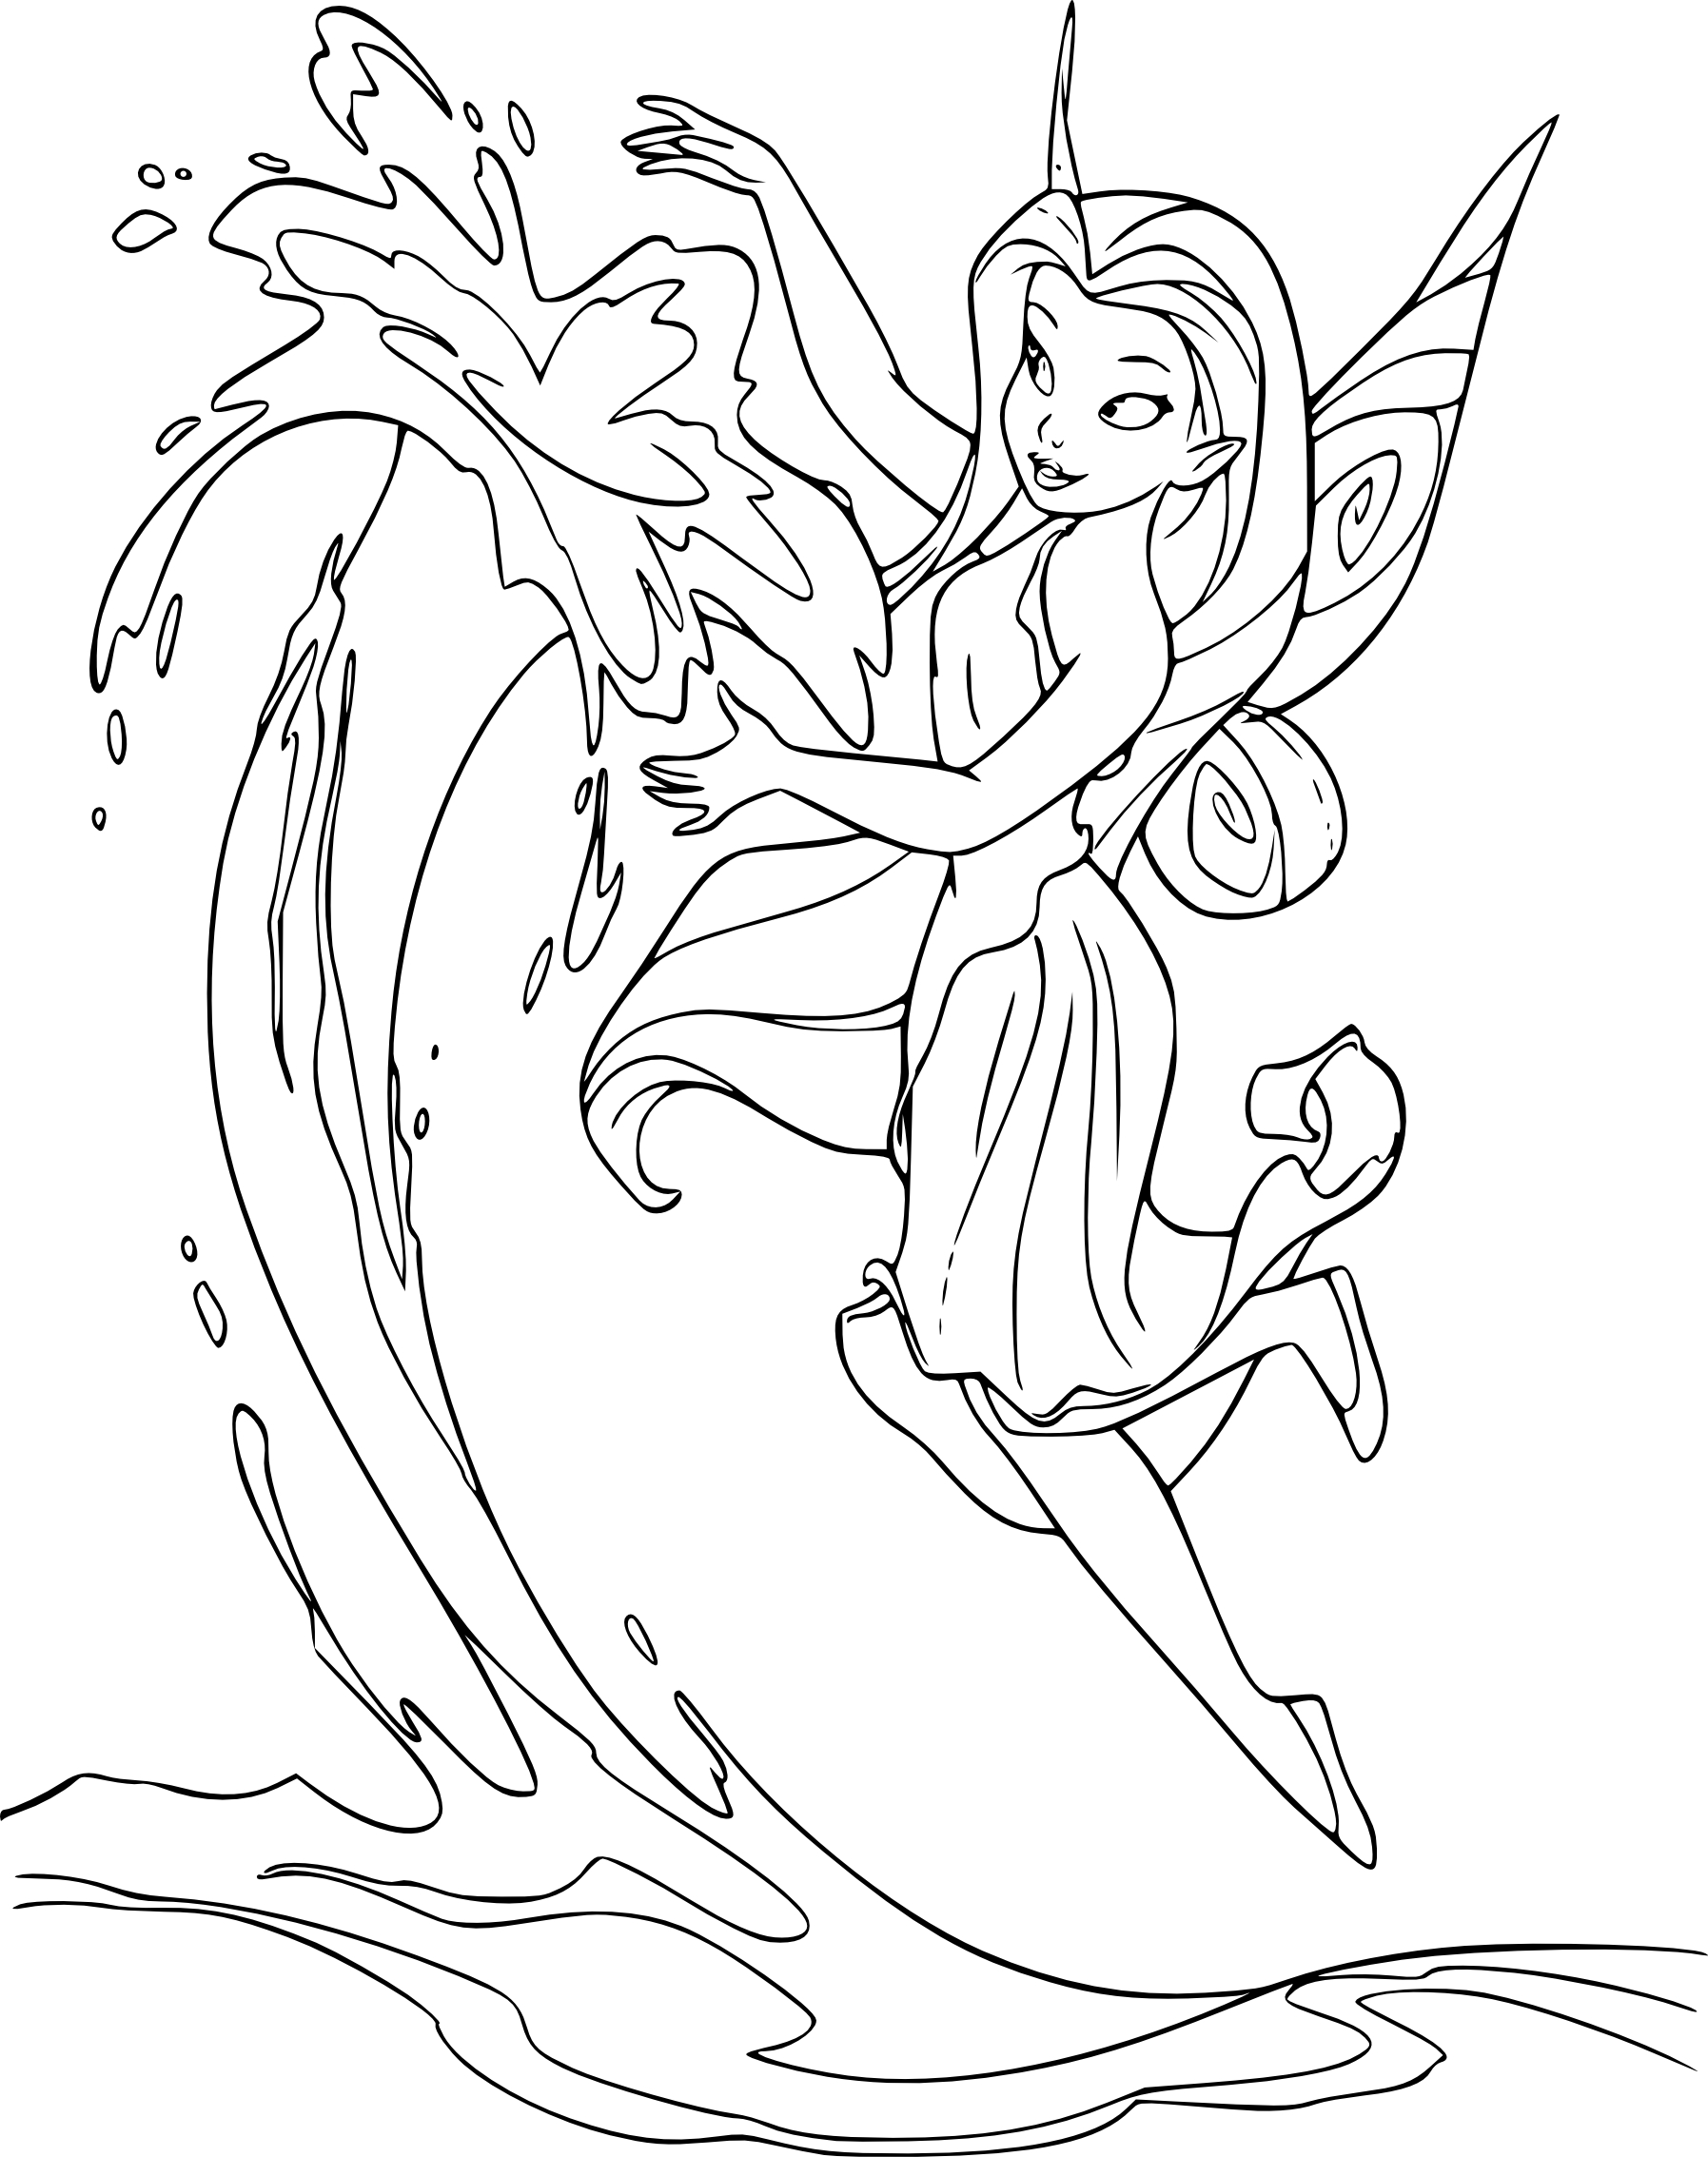 Coloriage Fee Bleue.Coloriage La Fee Aquatique Ondine A Imprimer Et Colorier